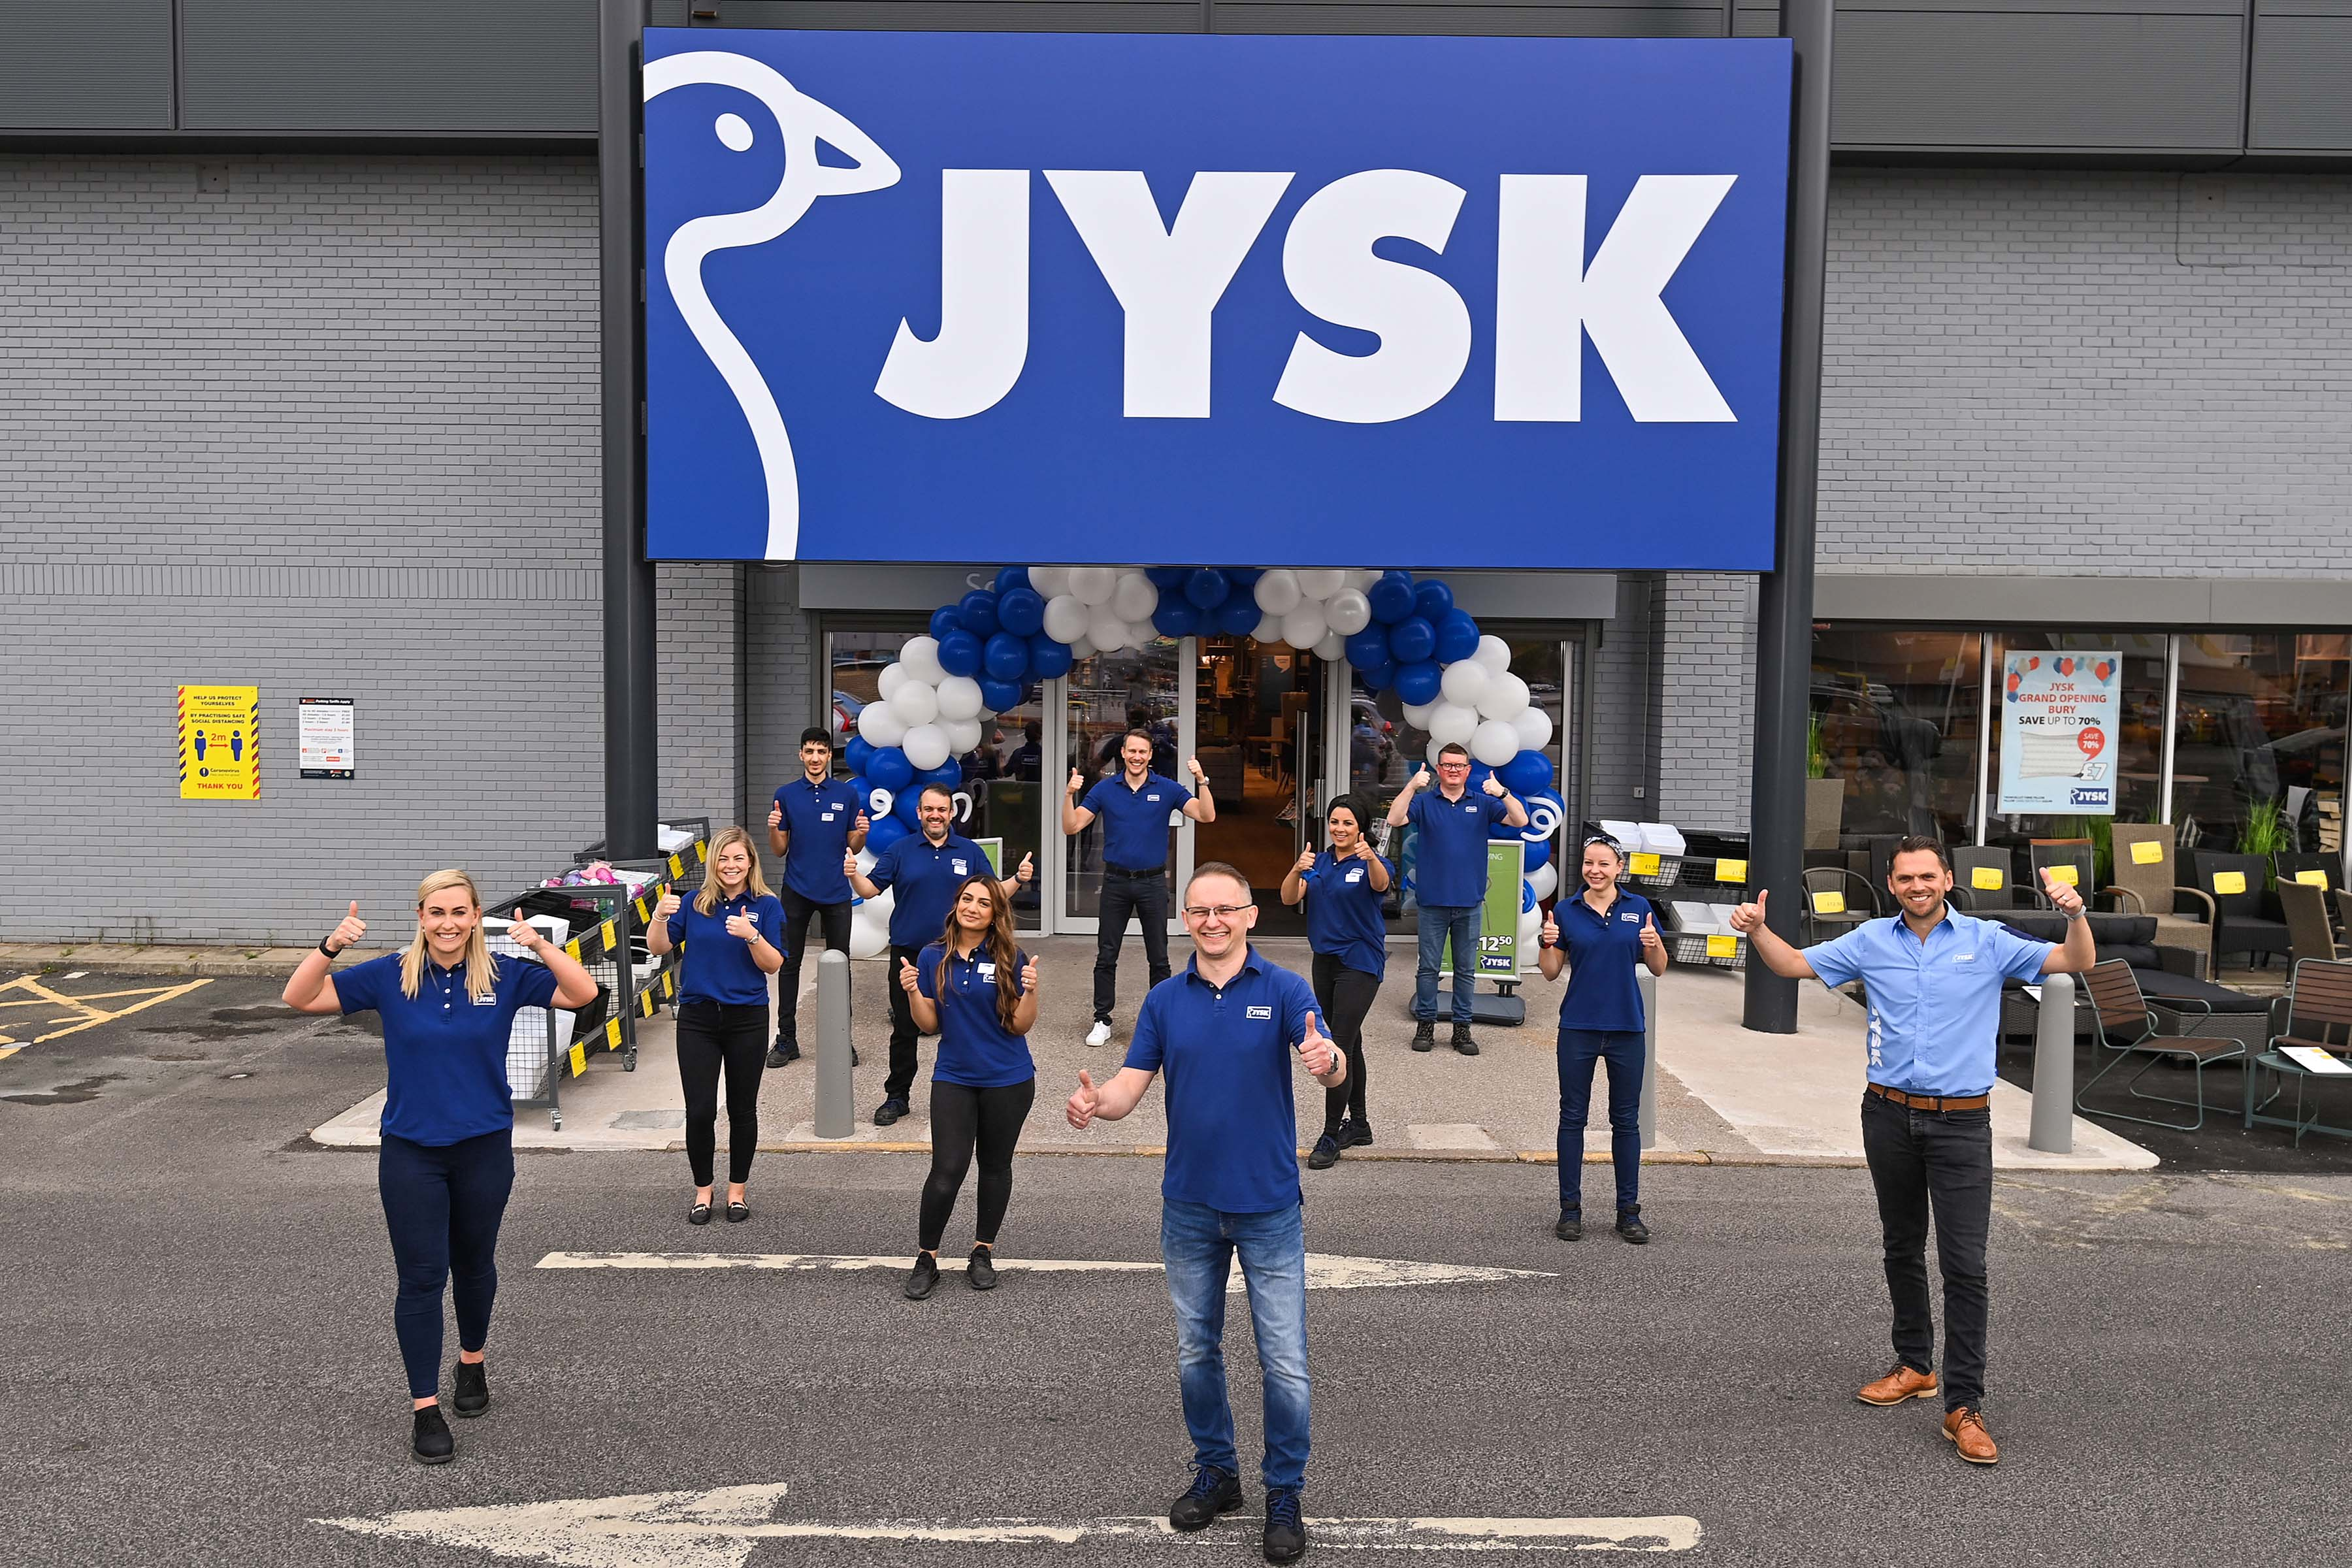 JYSK expands in Greater Manchester and supports local charitable causes